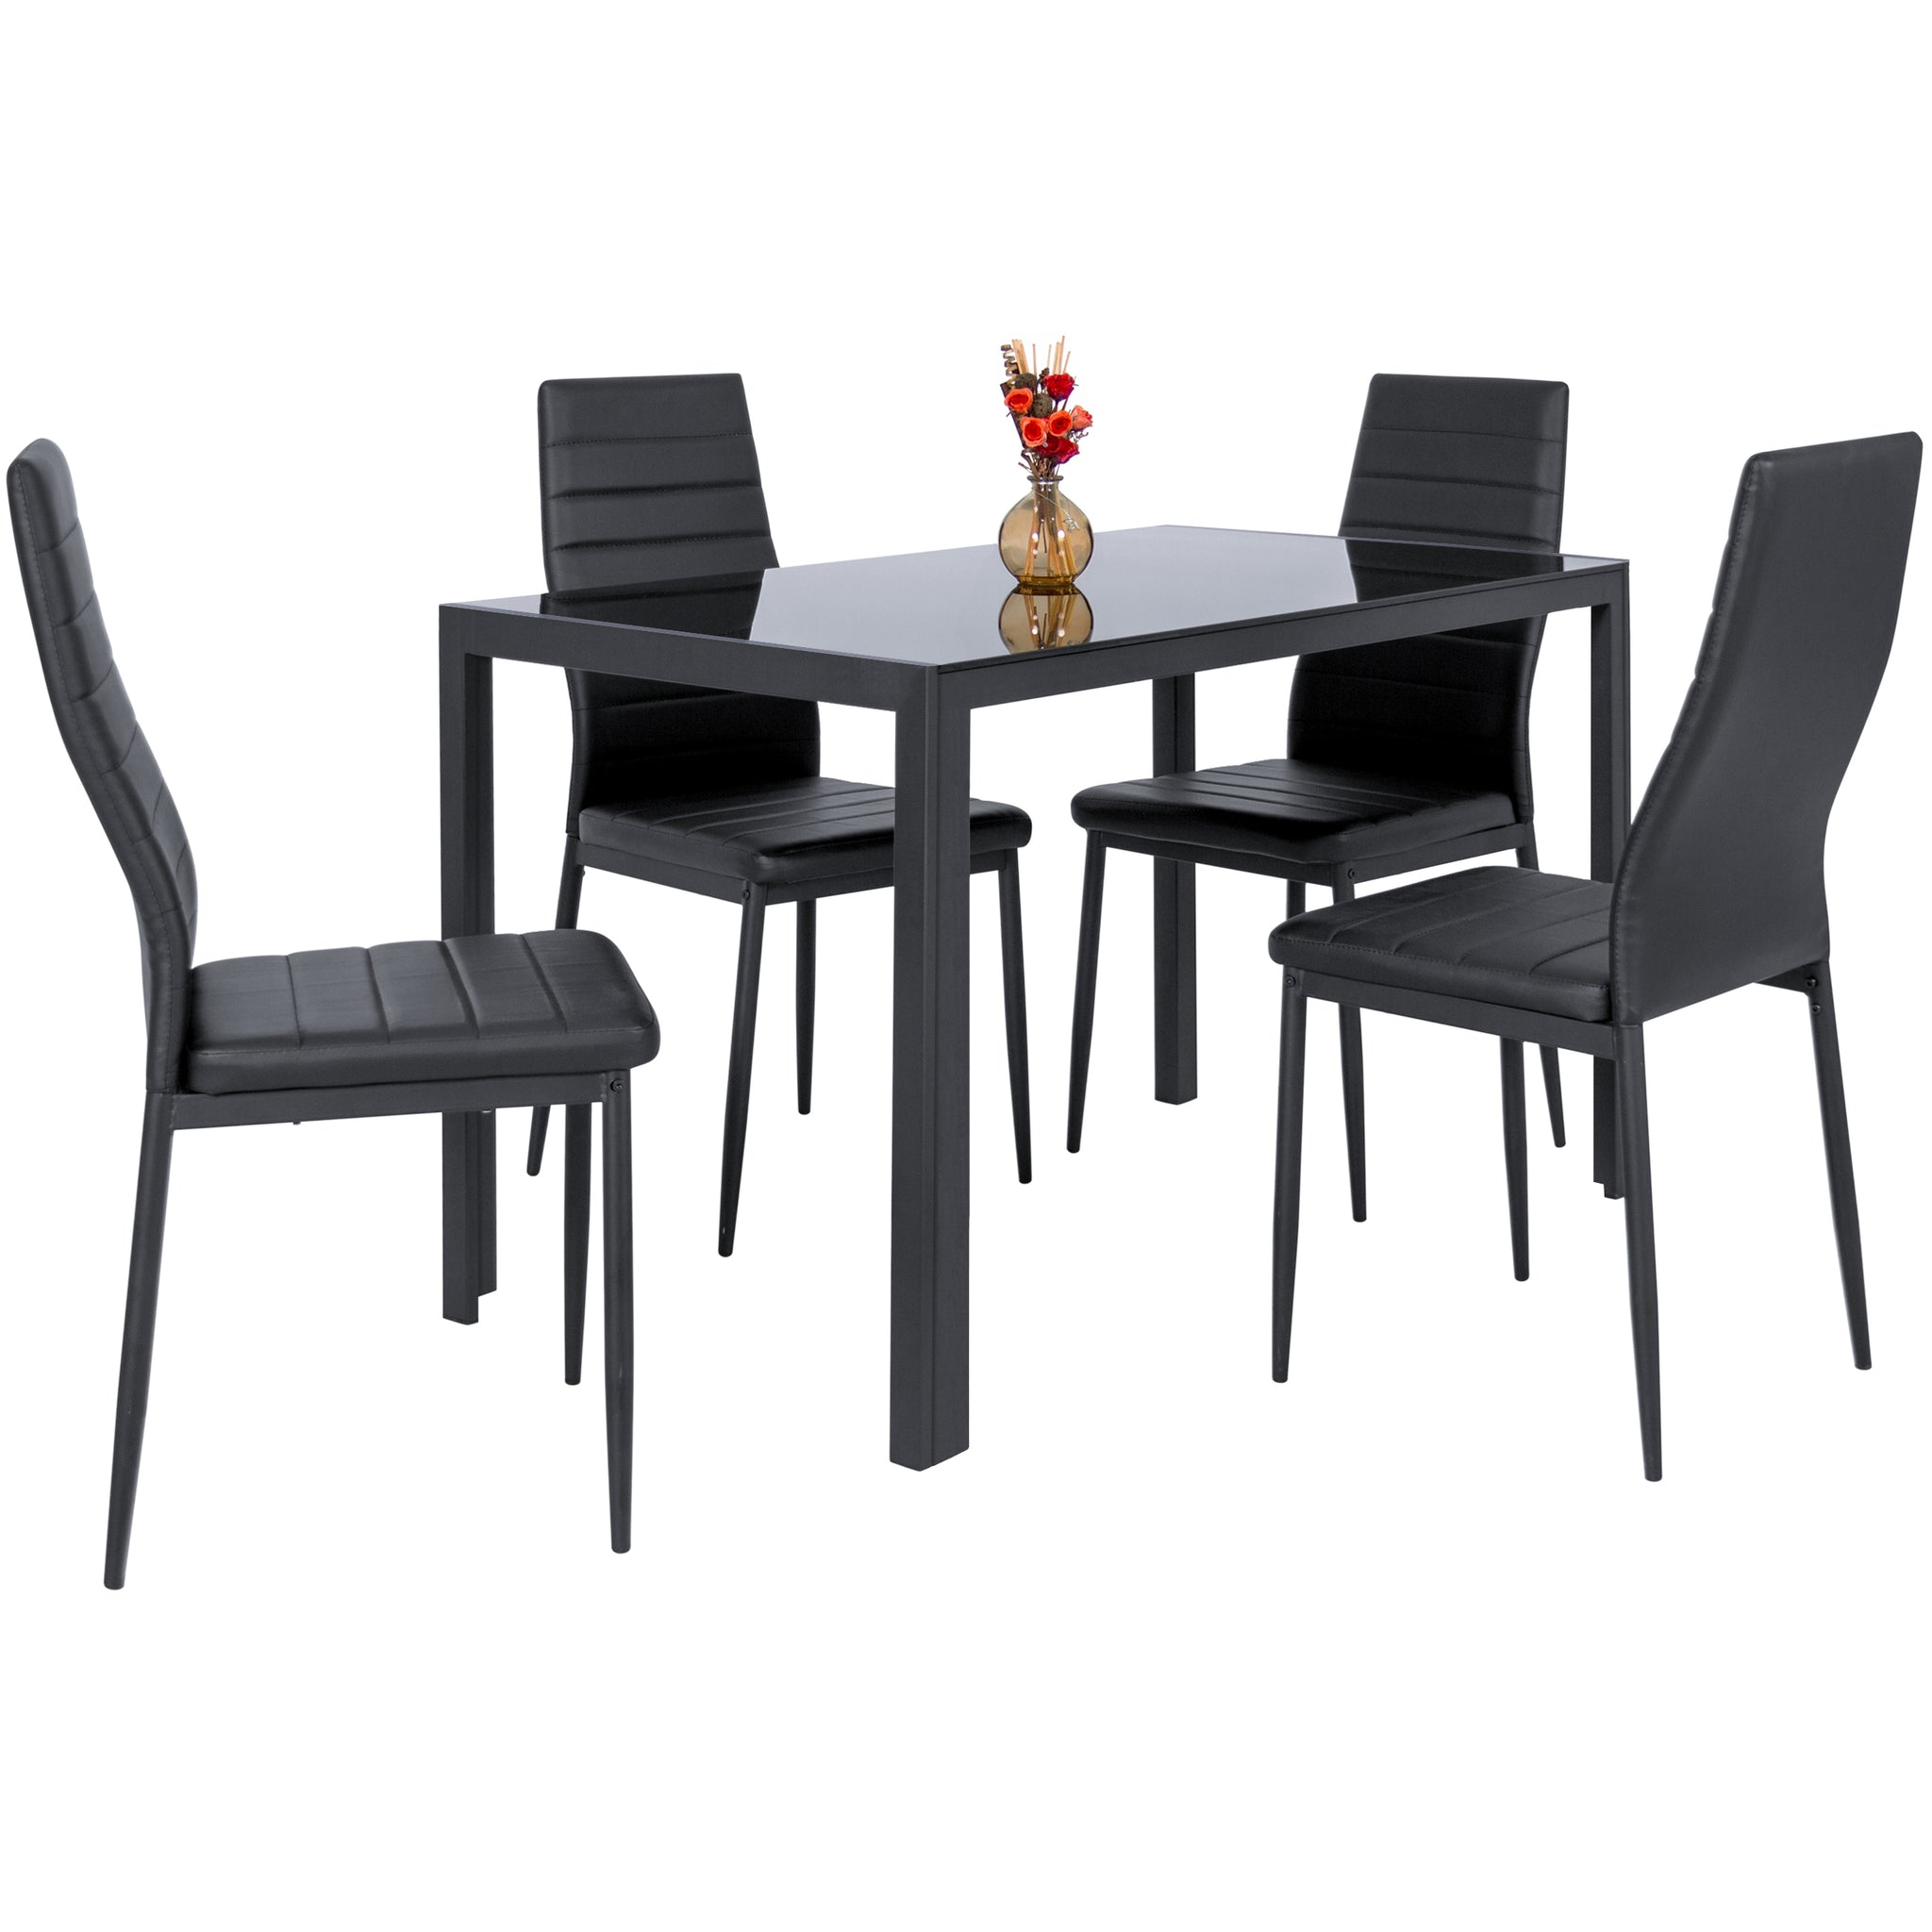 5-Piece Dining Table Set w/ Glass Top, Leather Chairs - Black ...